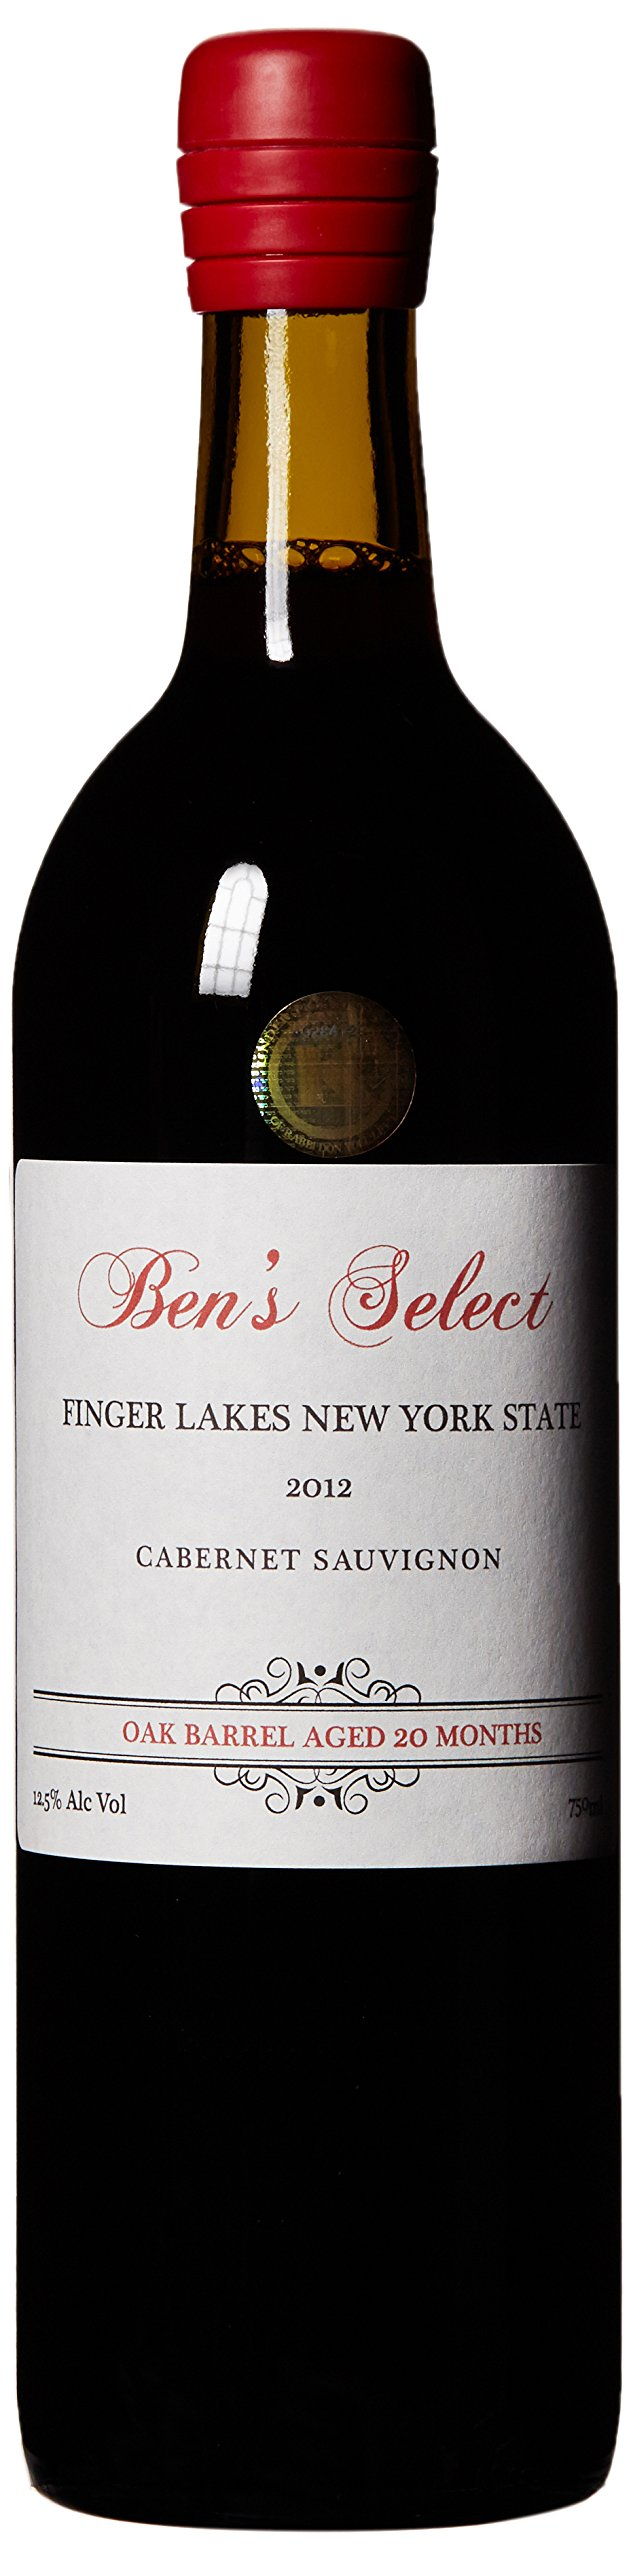 """2012 Ben Ish Winery """"Ben's Select"""" Finger Lakes New York State Cabernet Sauvignon with personalized label 750 mL"""